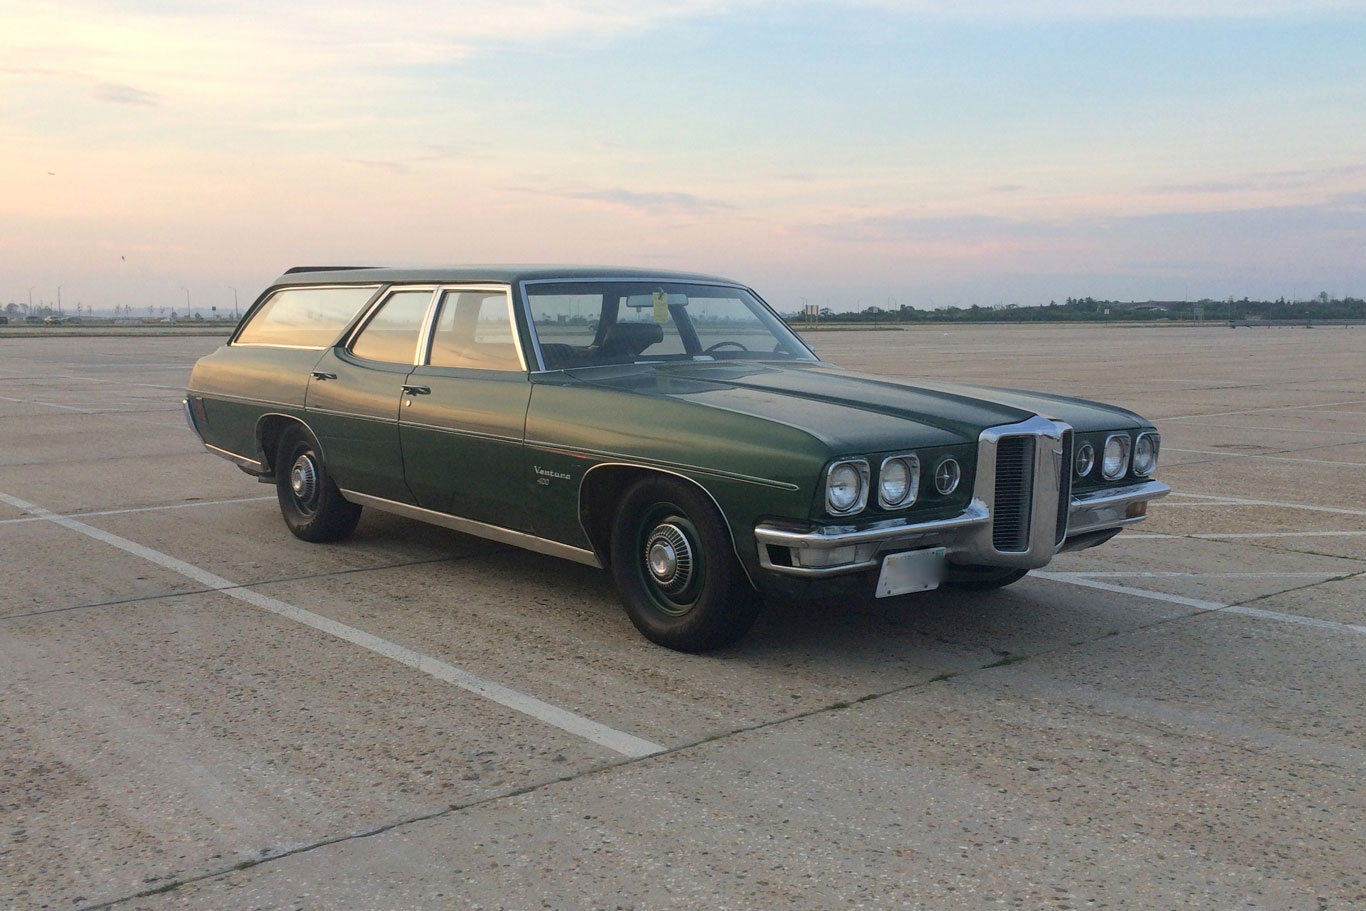 Reviled no more, vintage station wagons are more than grocery getters thumbnail